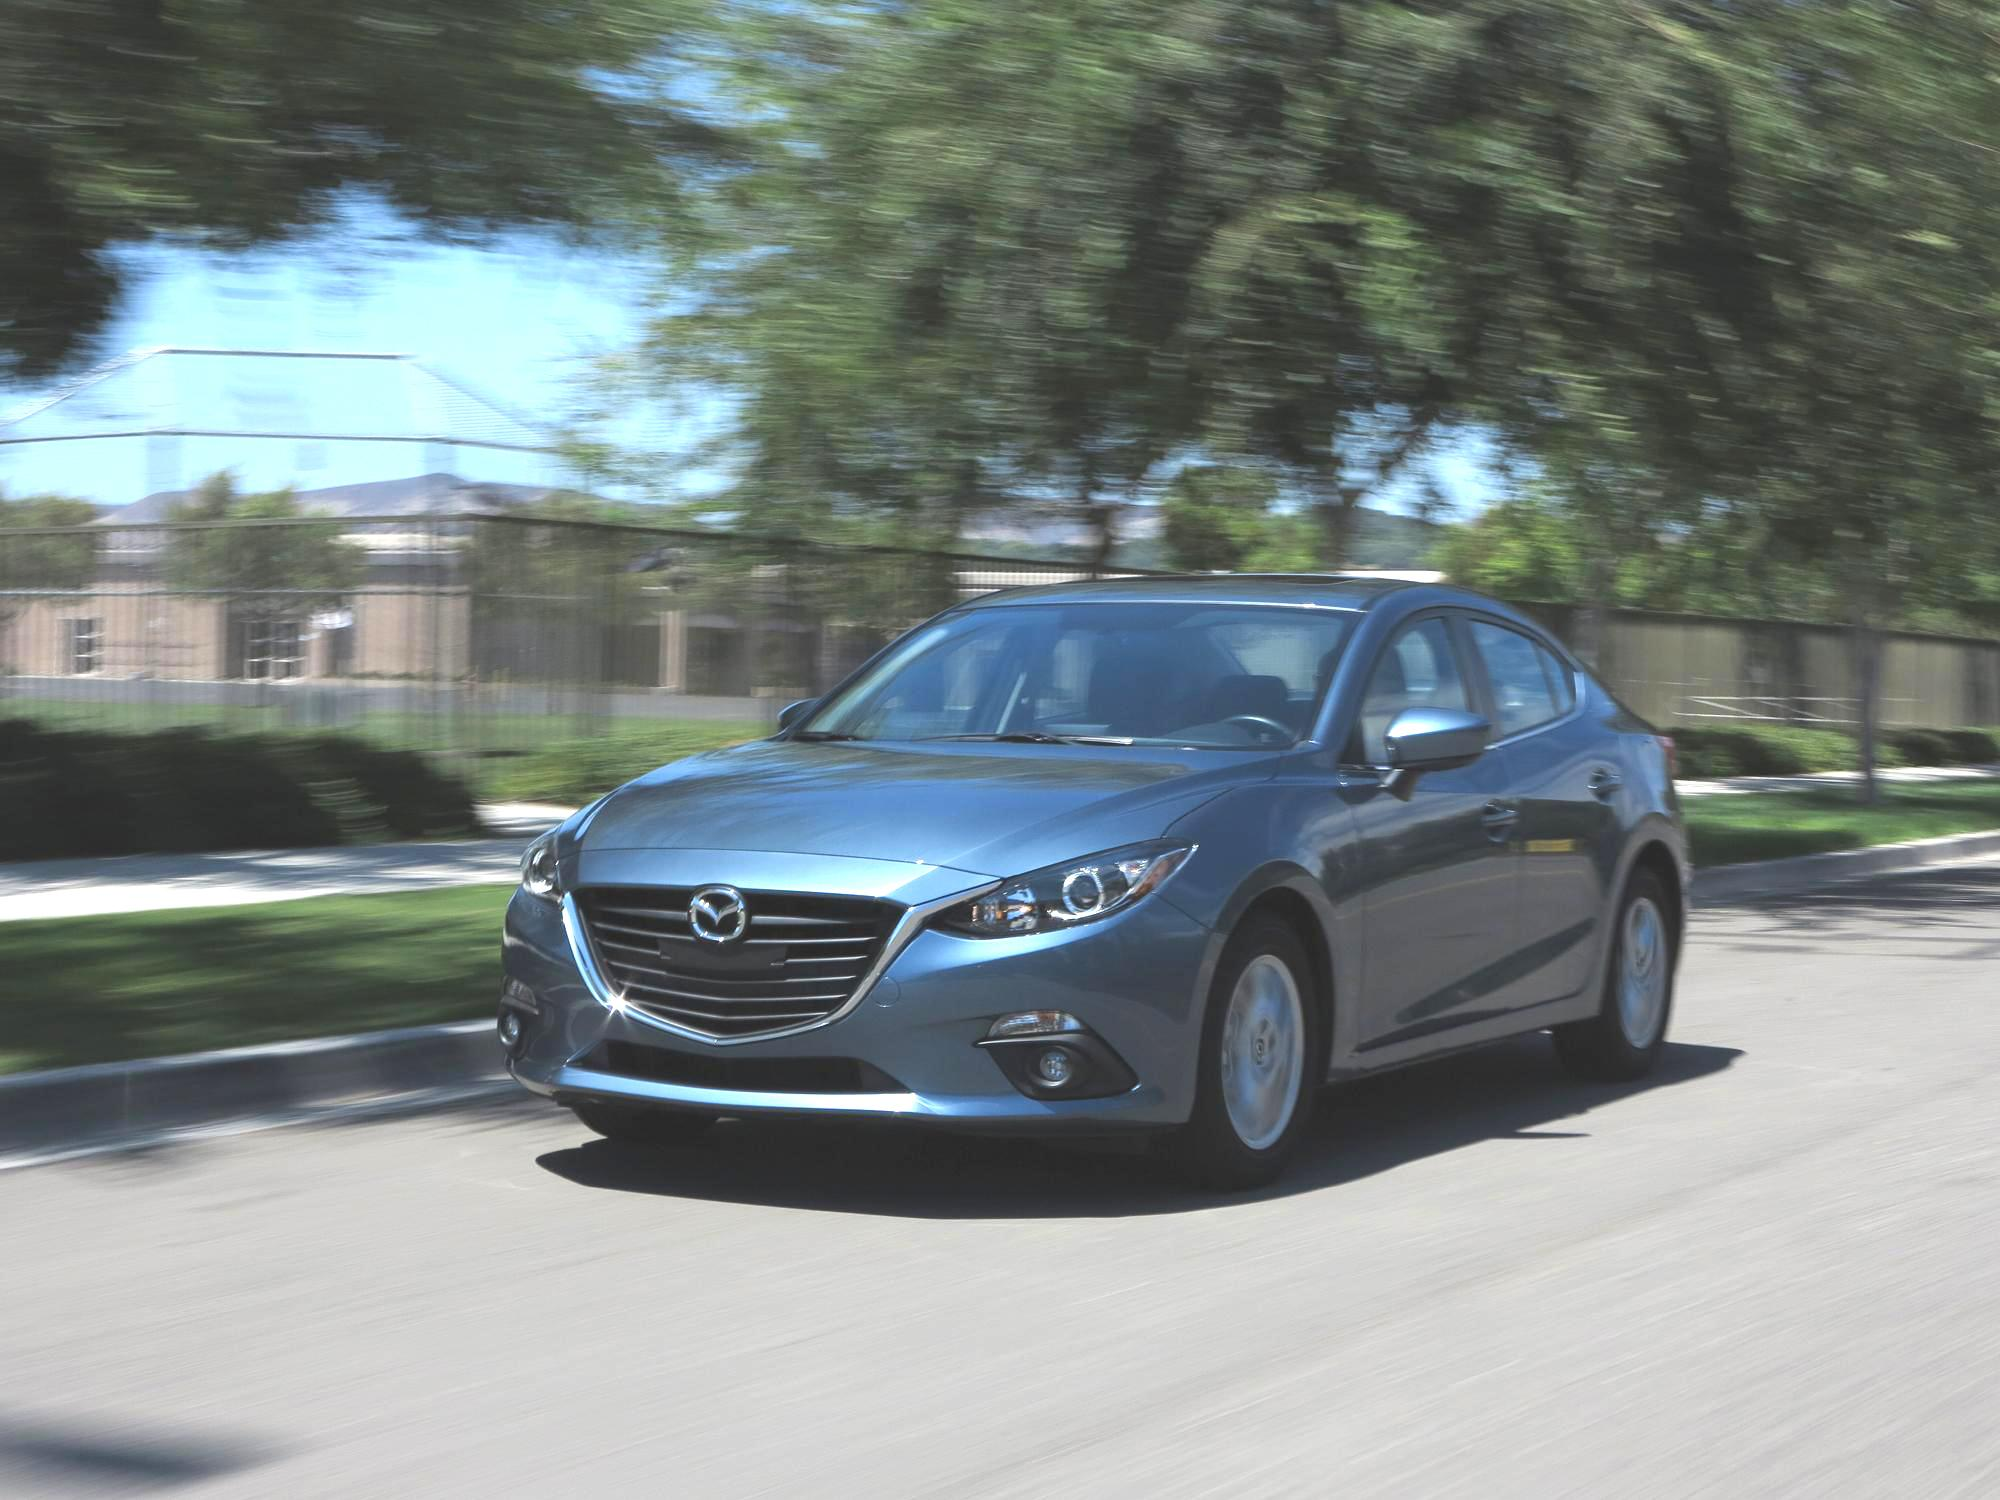 test drive review the 2015 mazda 3 youwheel your car. Black Bedroom Furniture Sets. Home Design Ideas